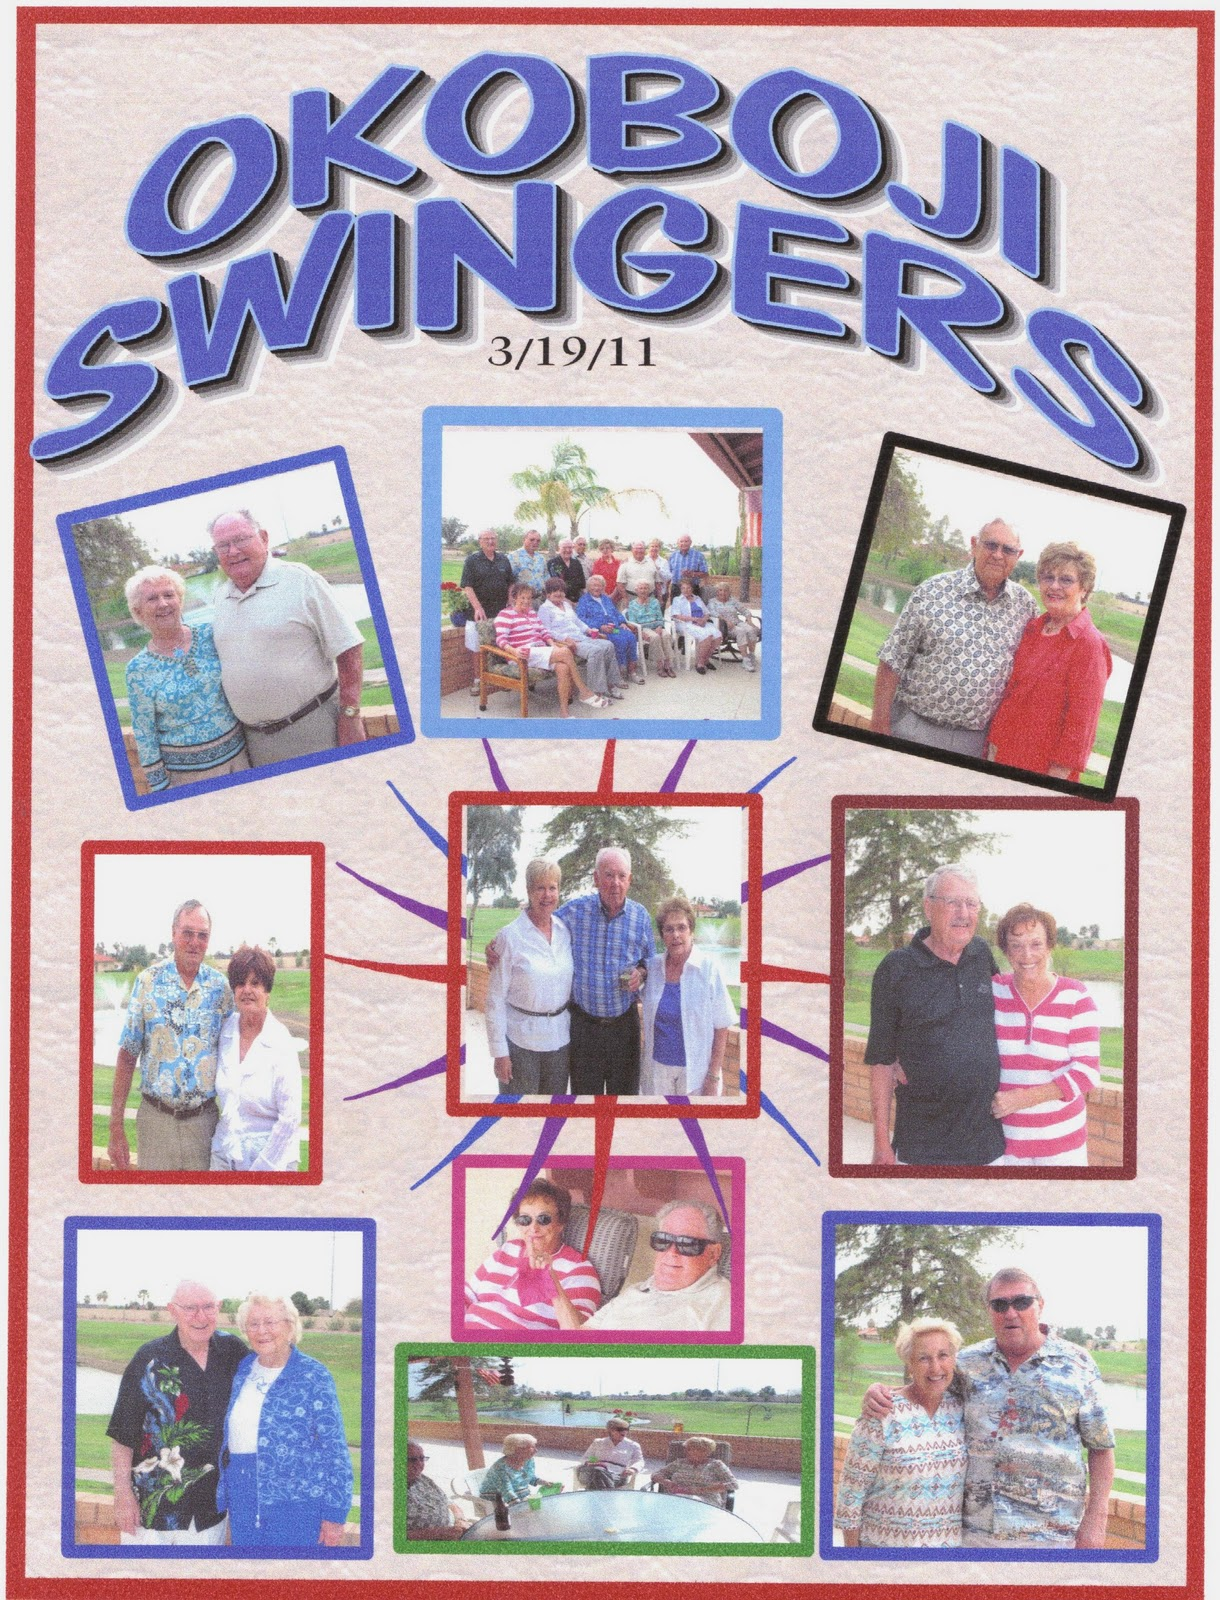 Swingers in okoboji iowa